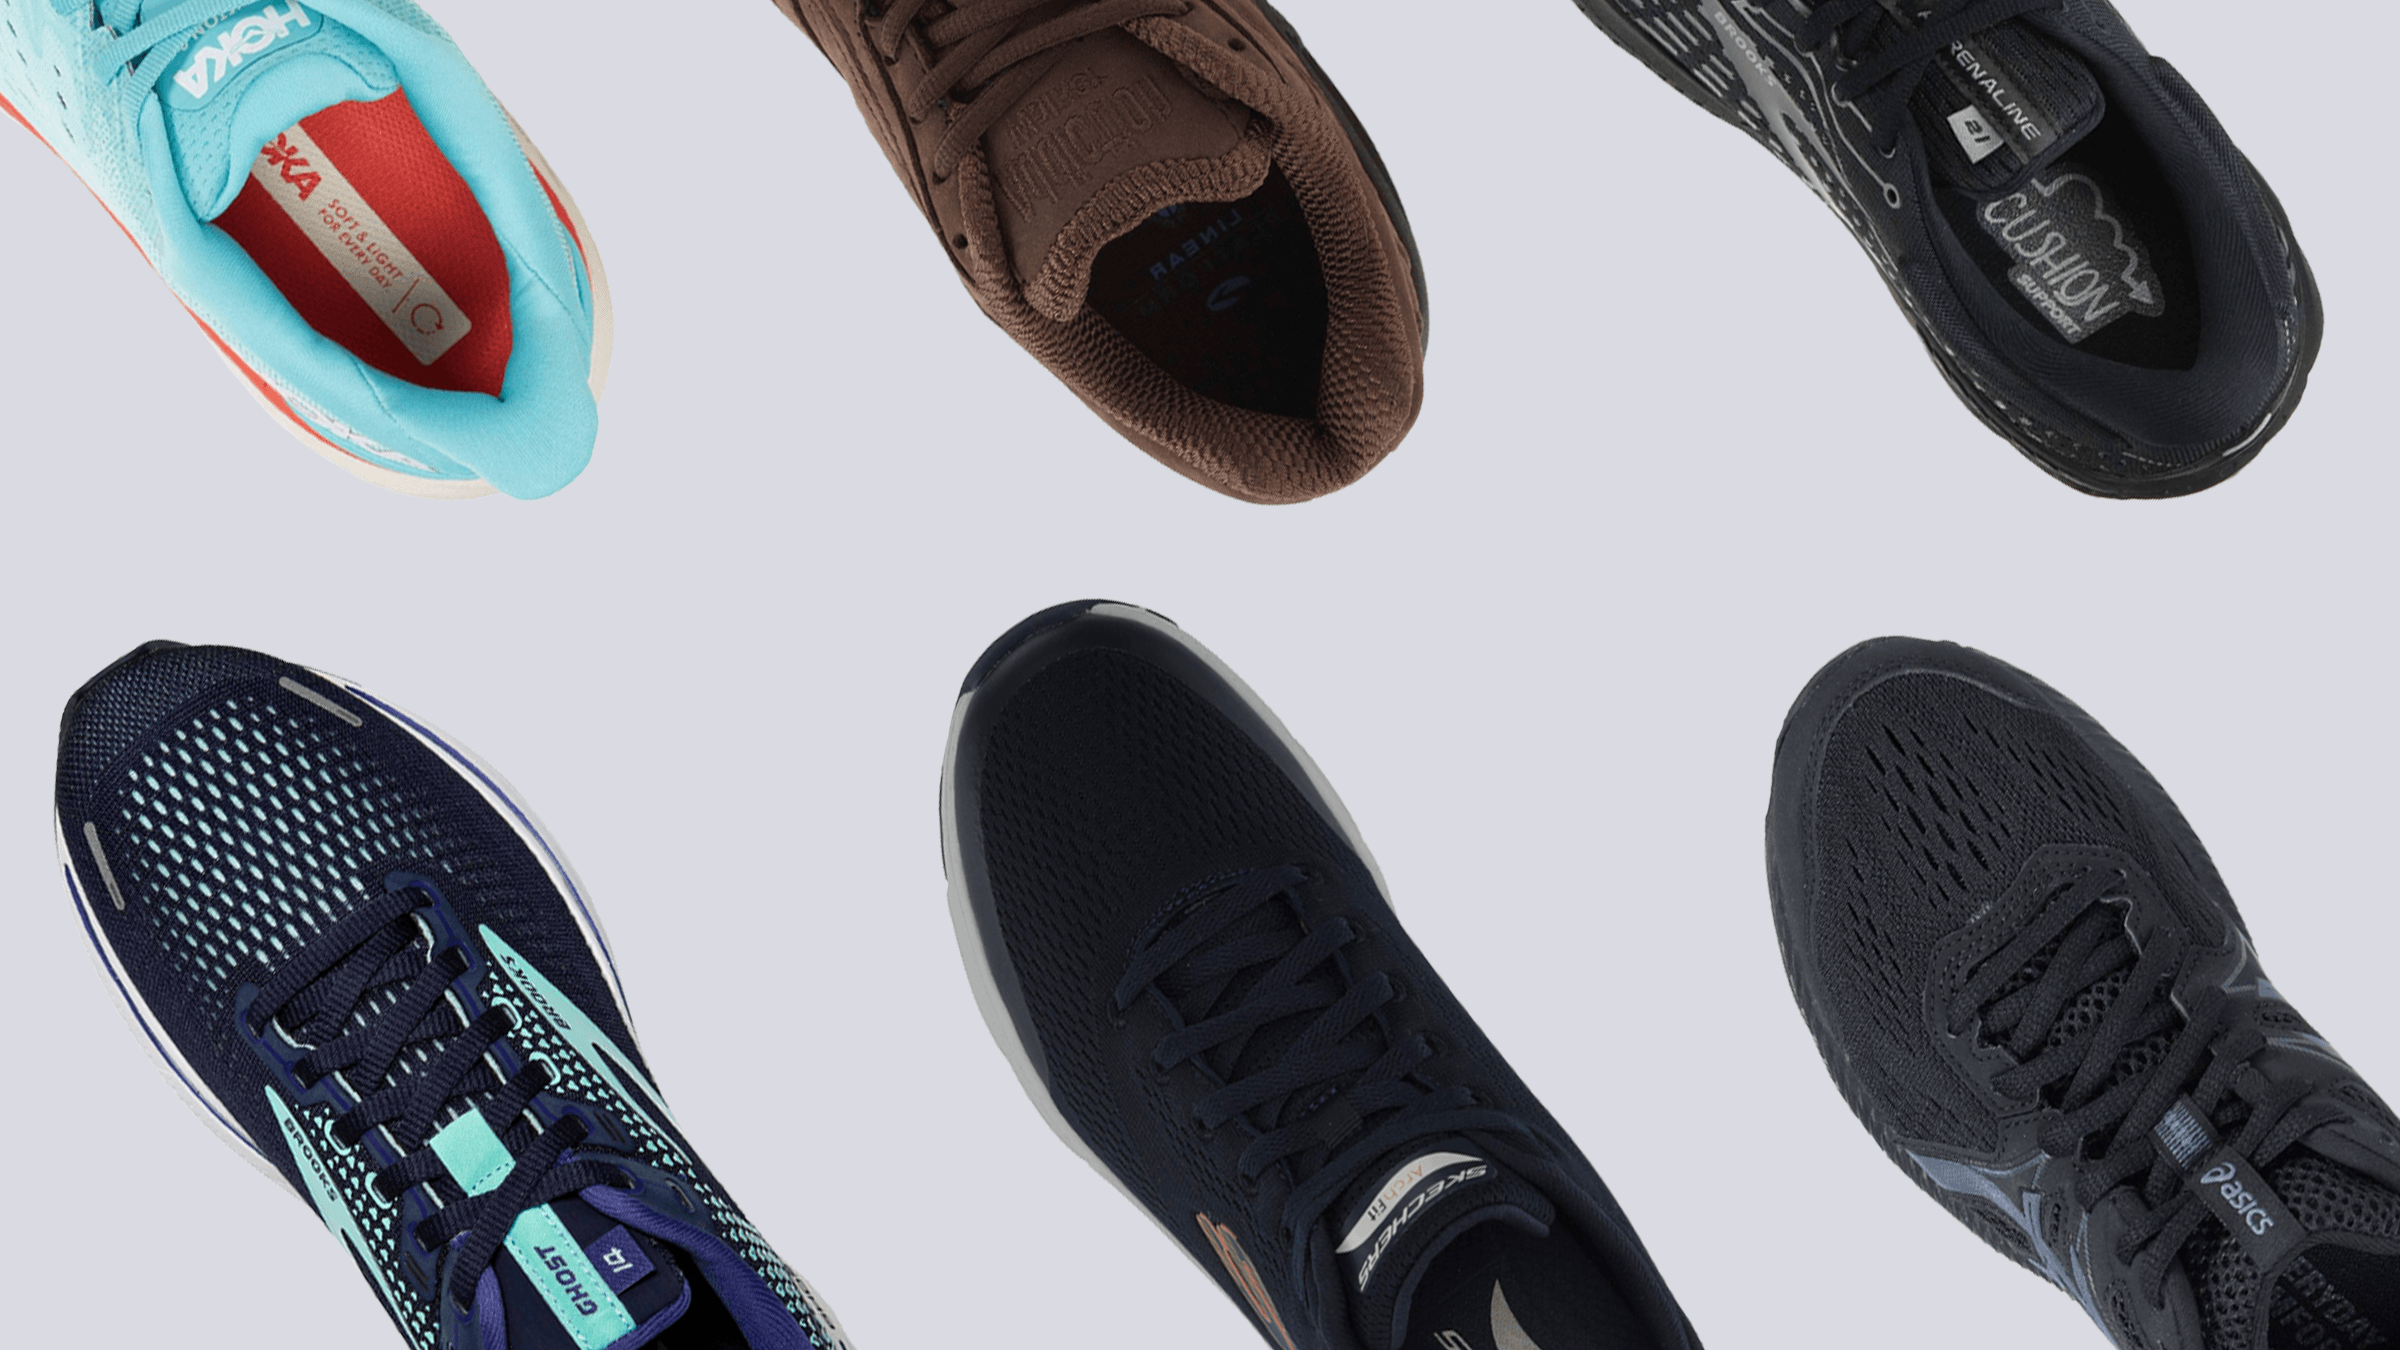 10 Best Walking Shoes For Plantar Fasciitis in 2021